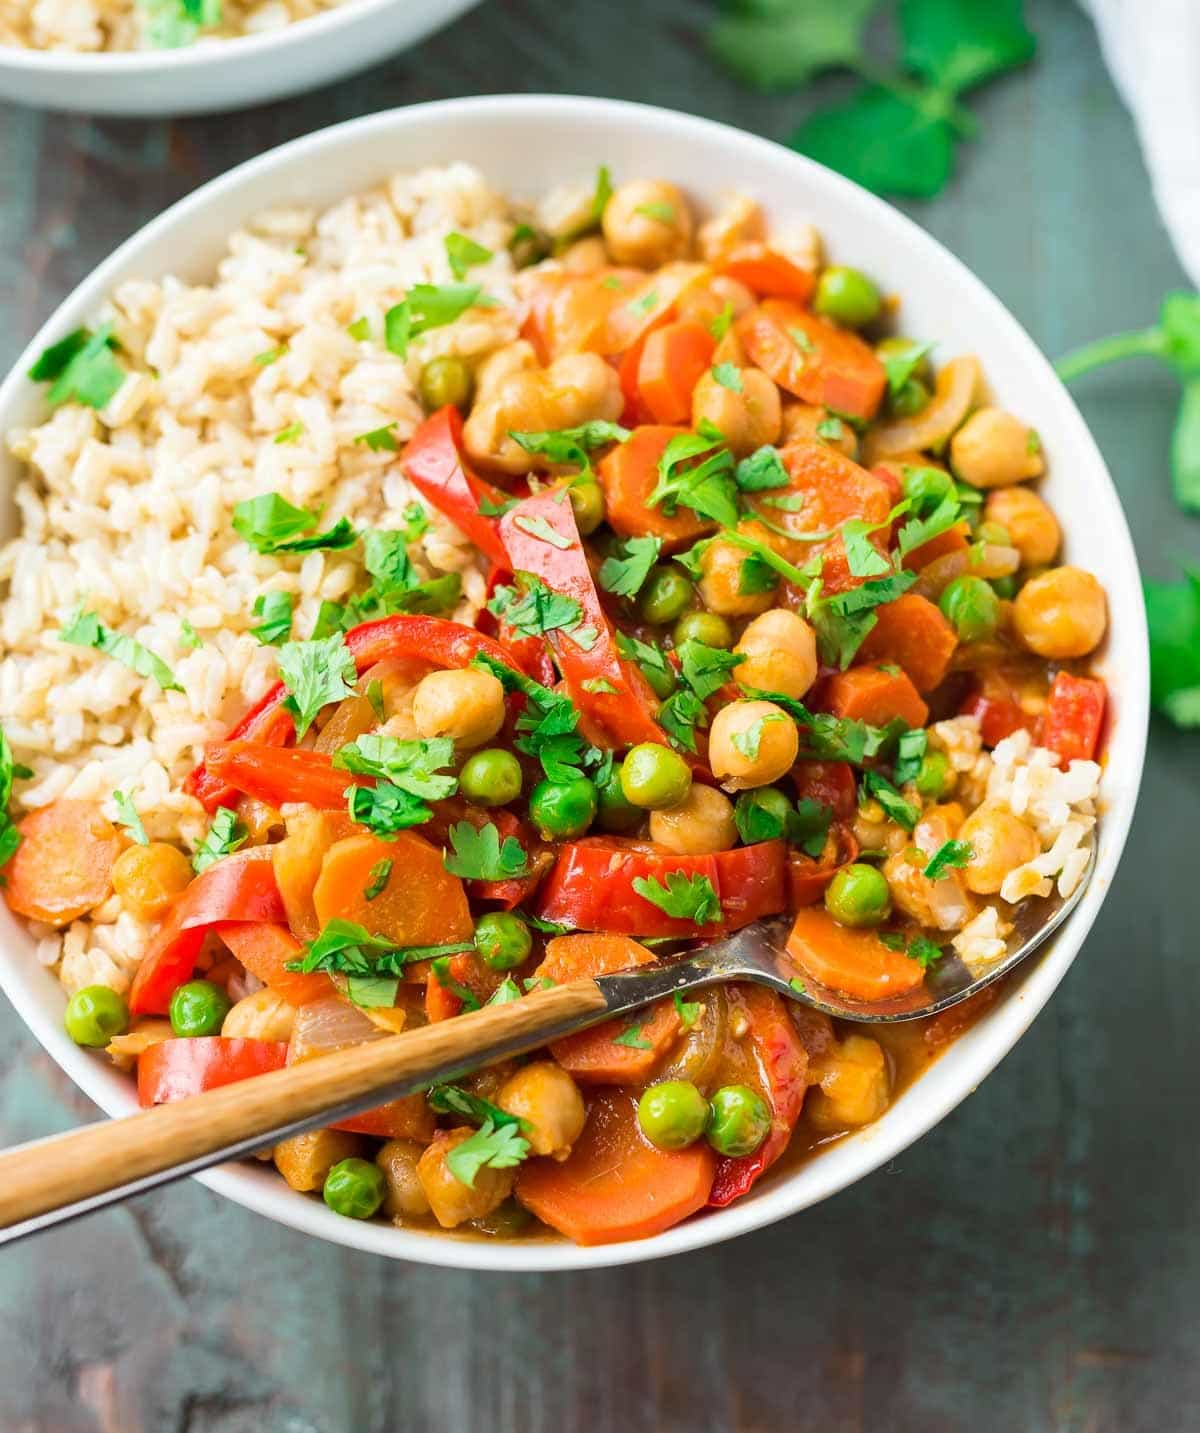 Easy vegan Chickpea Coconut Curry. Ready in 25 minutes! The Thai curry sauce is FULL of flavor and you can use any of your favorite vegetables. {clean eating, gluten free} Recipe at wellplated.com   @wellplated